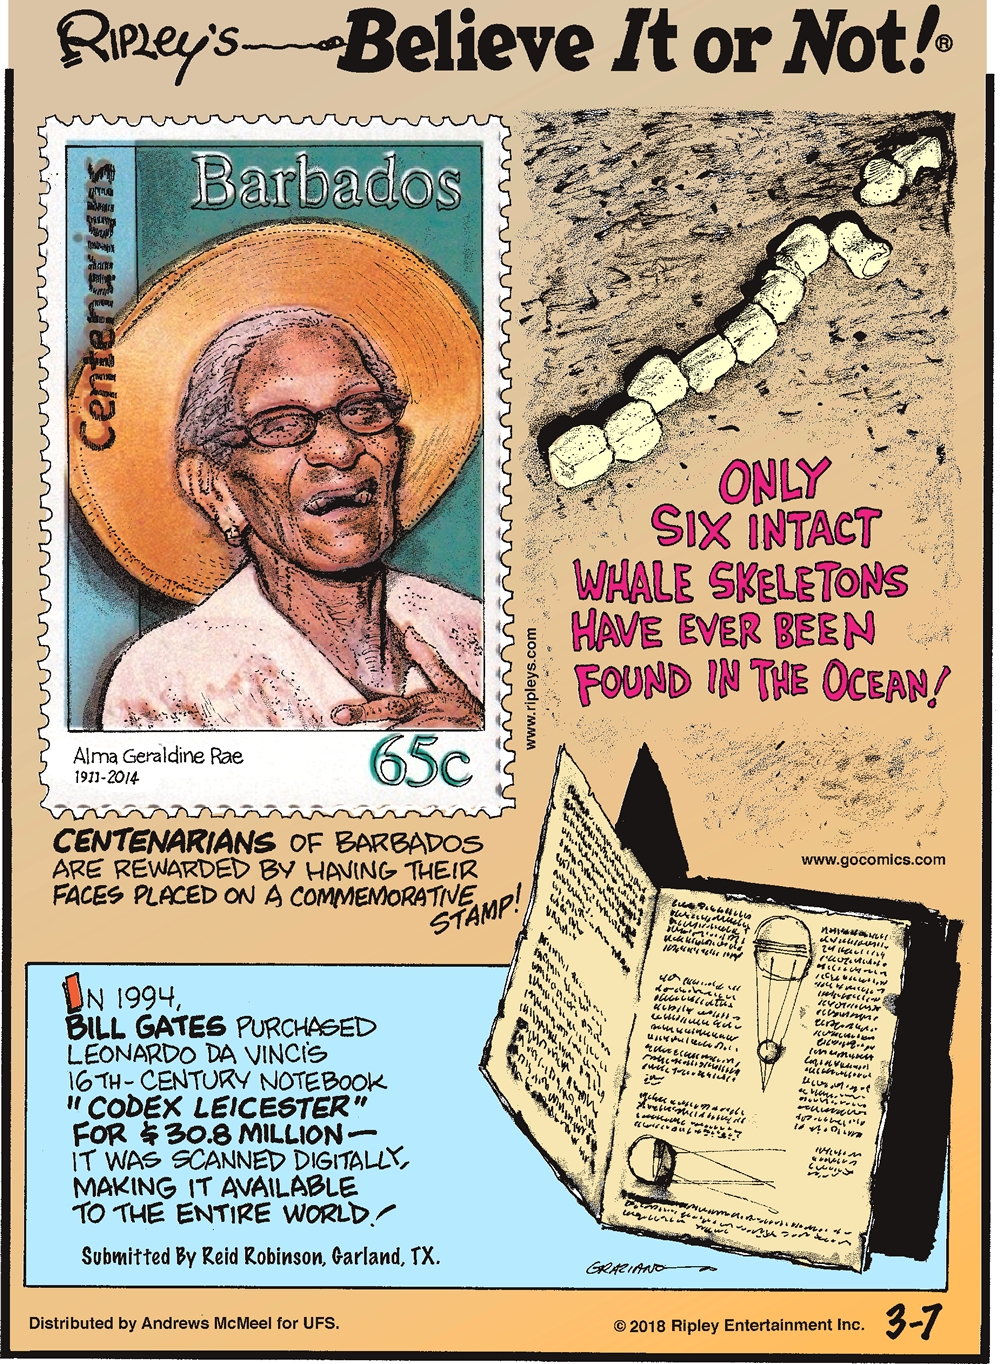 """Centenarians of Barbados are rewarded by having their faces placed on a commemorative stamp!-------------------- Only six intact whale skeletons have ever been found in the ocean!-------------------- In 1994, Bill Gates purchased Leonardo Da Vinci's 16th-century notebook """"Codex Leicester"""" for $30.8 million - it was scanned digitally, making it available to the entire world! Submitted by Reid Robinson, Garland, TX."""